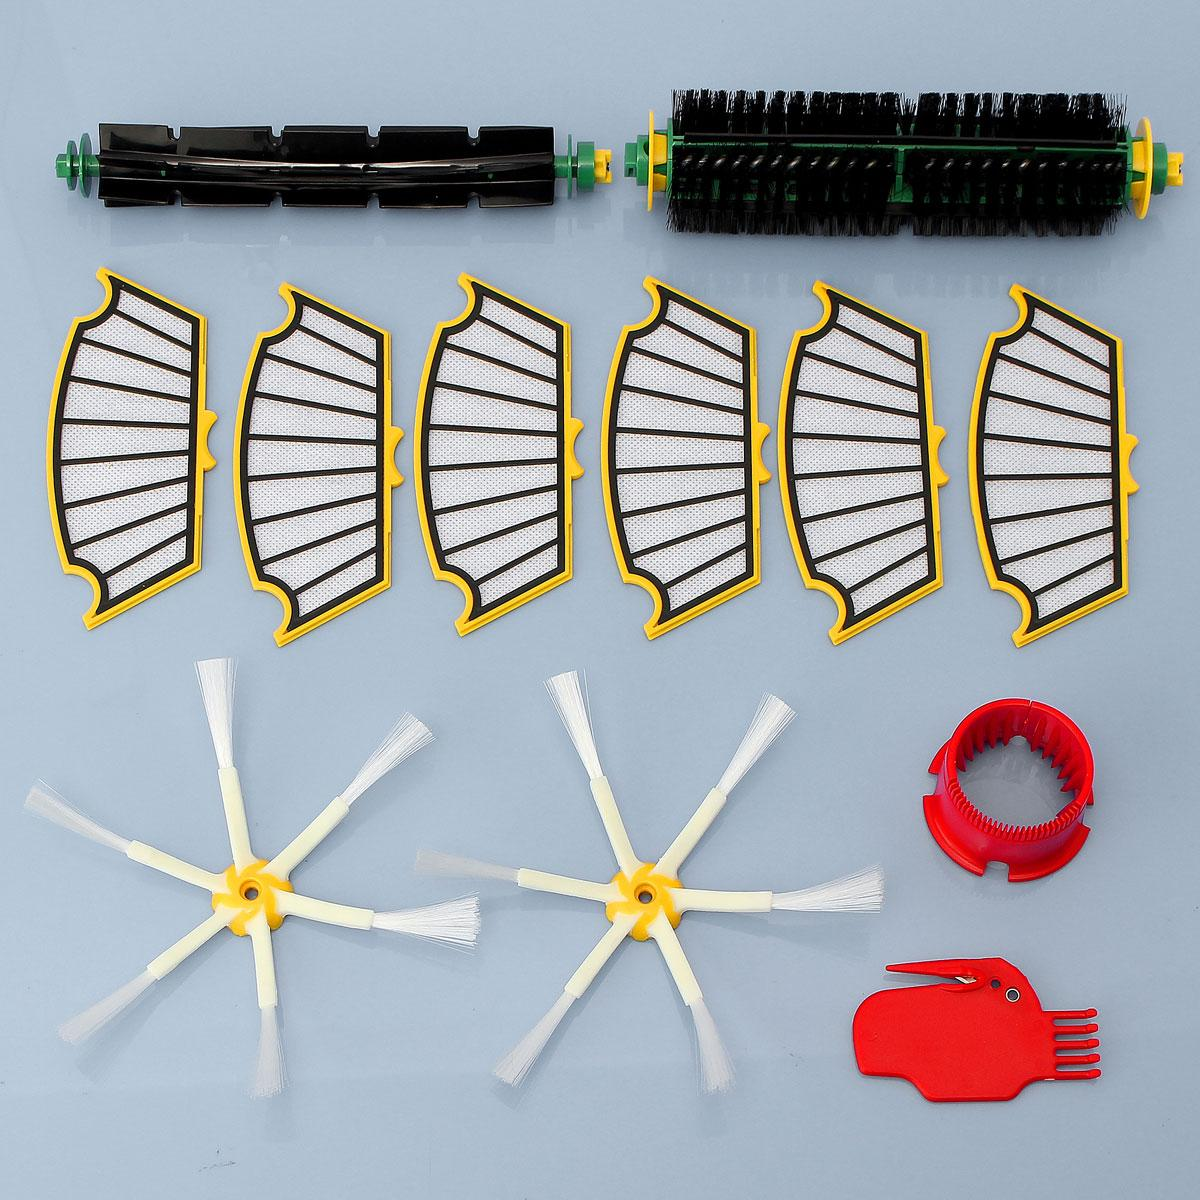 2018 Replacement Filter Bristle/Beater Brush Round Cleaning Tool Vacuum Cleaner Accessories Kit For iRobot Roomba 500 Series vacuum cleaning kit attachement kit dusting dusting brush nozzle crevices tool upholster tool for 32mm